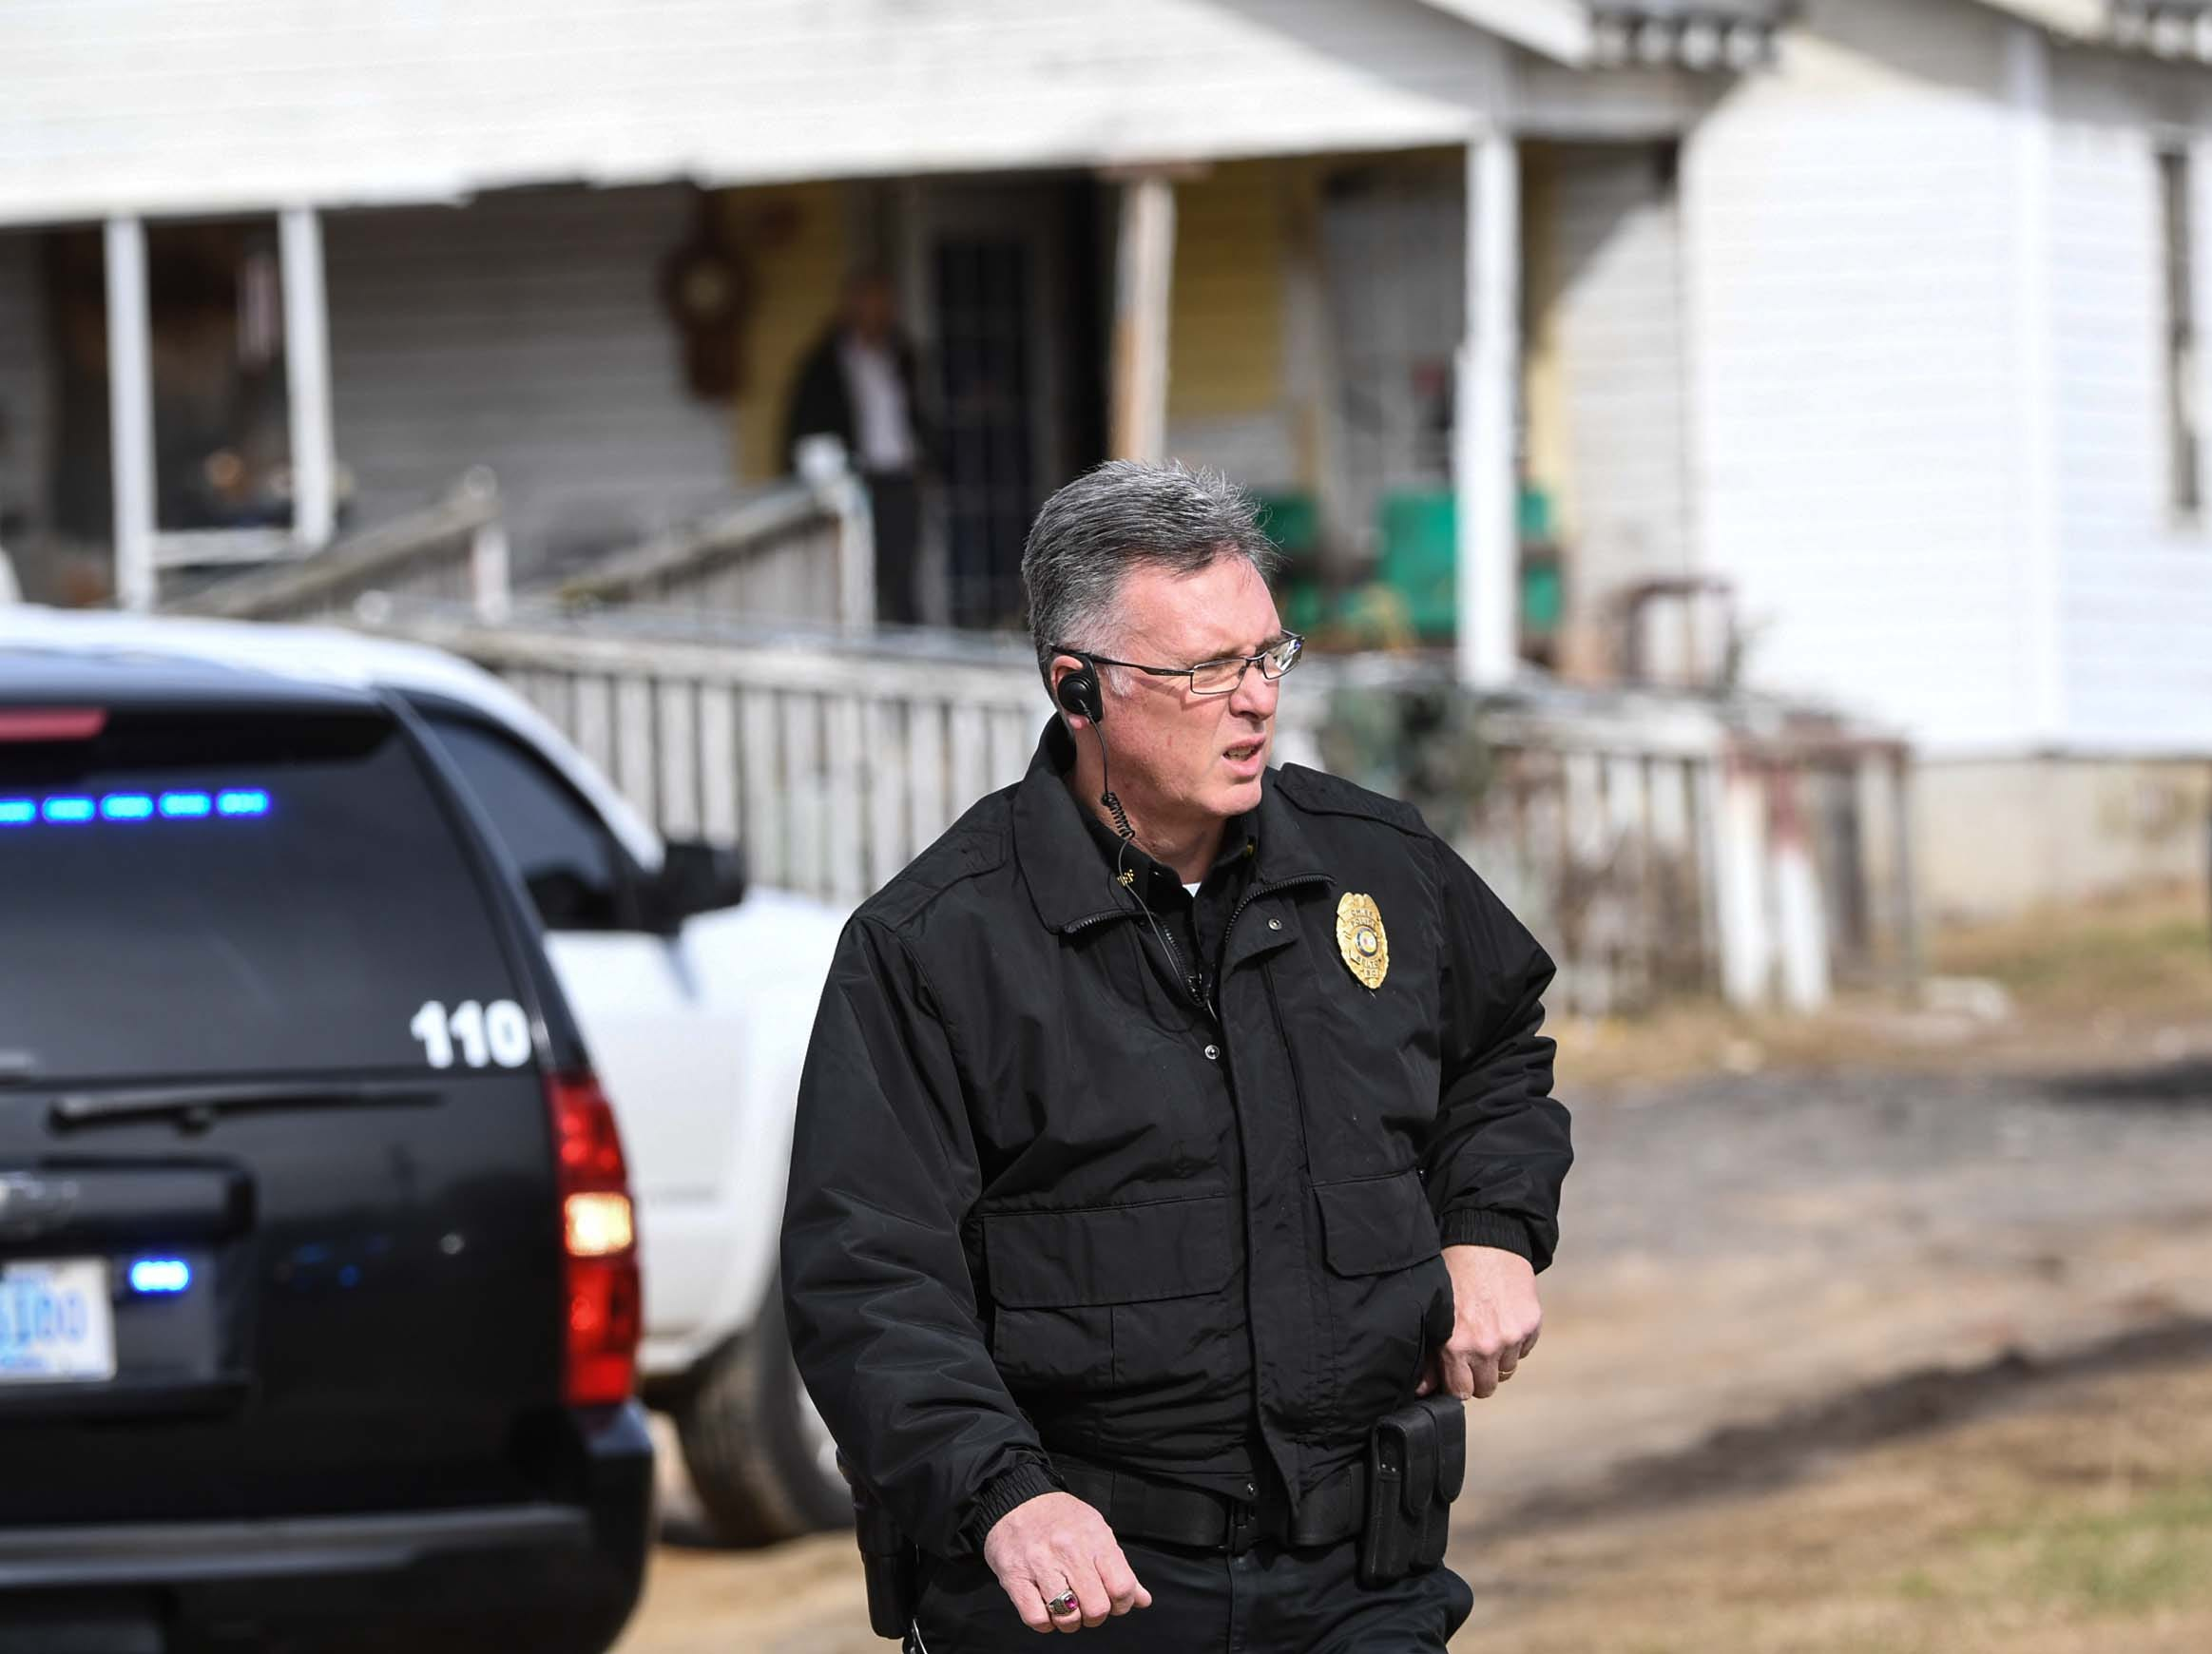 Belton Police Chief Tommy Clamp stands at a house where Anderson County Sheriff Deputies responded to on Brazeale Street in Belton following a report that a man struck an officer serving a warrant at a house Wednesday, December 12, 2018.